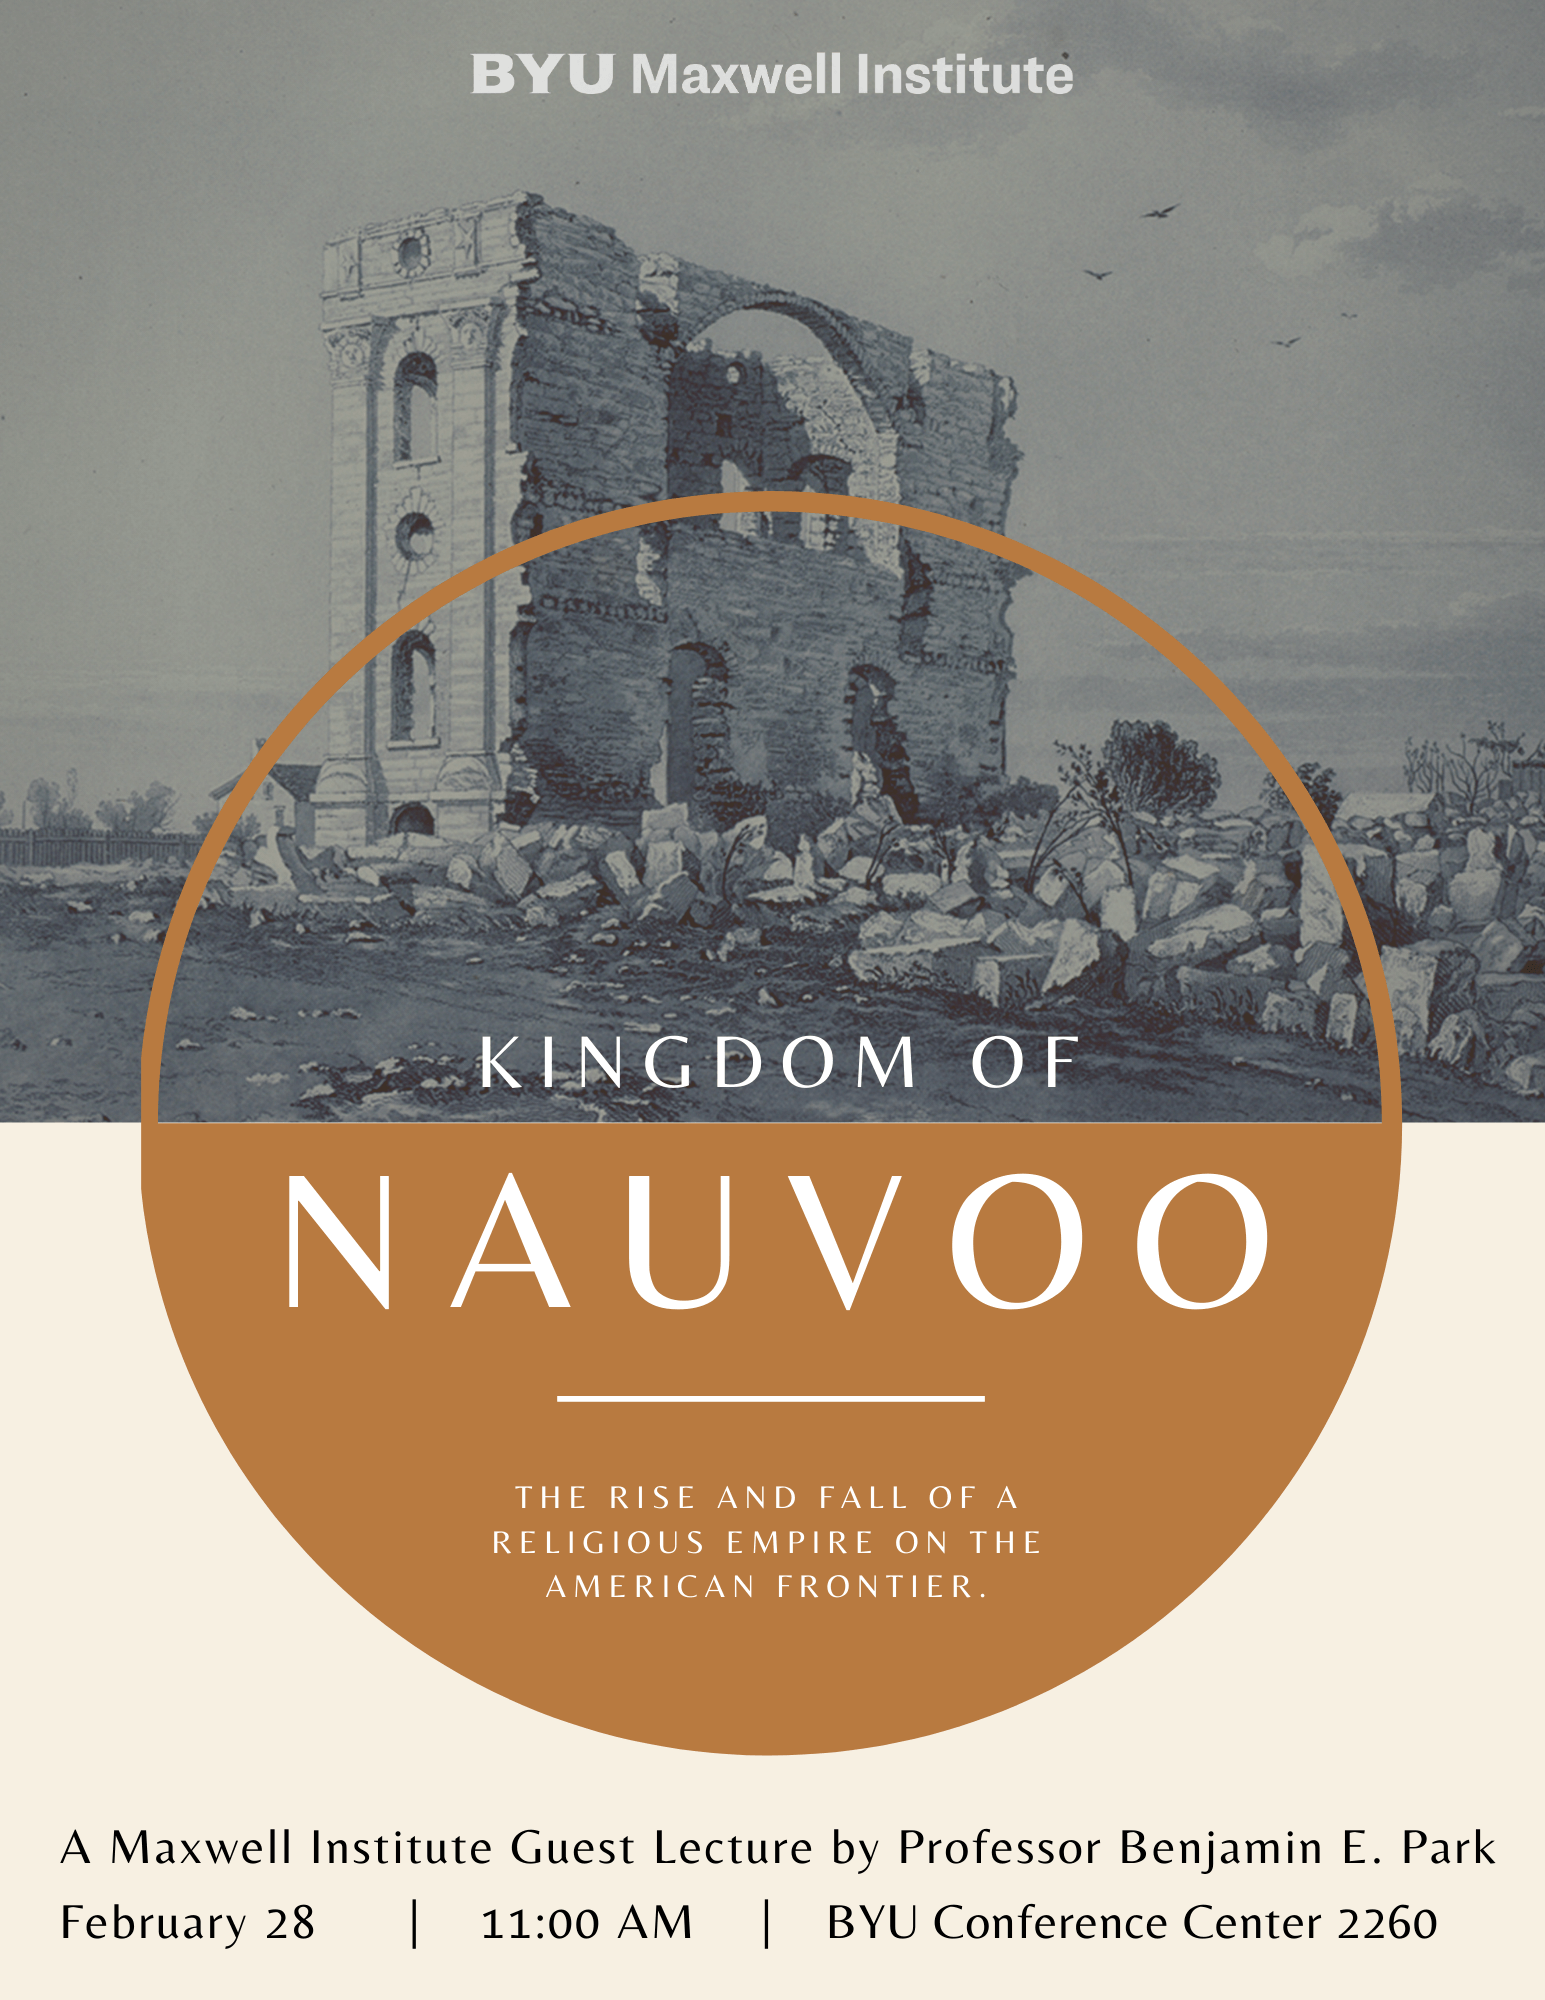 Kingdom Of Nauvoo The Rise And Fall Of A Religious Empire On The American Frontier